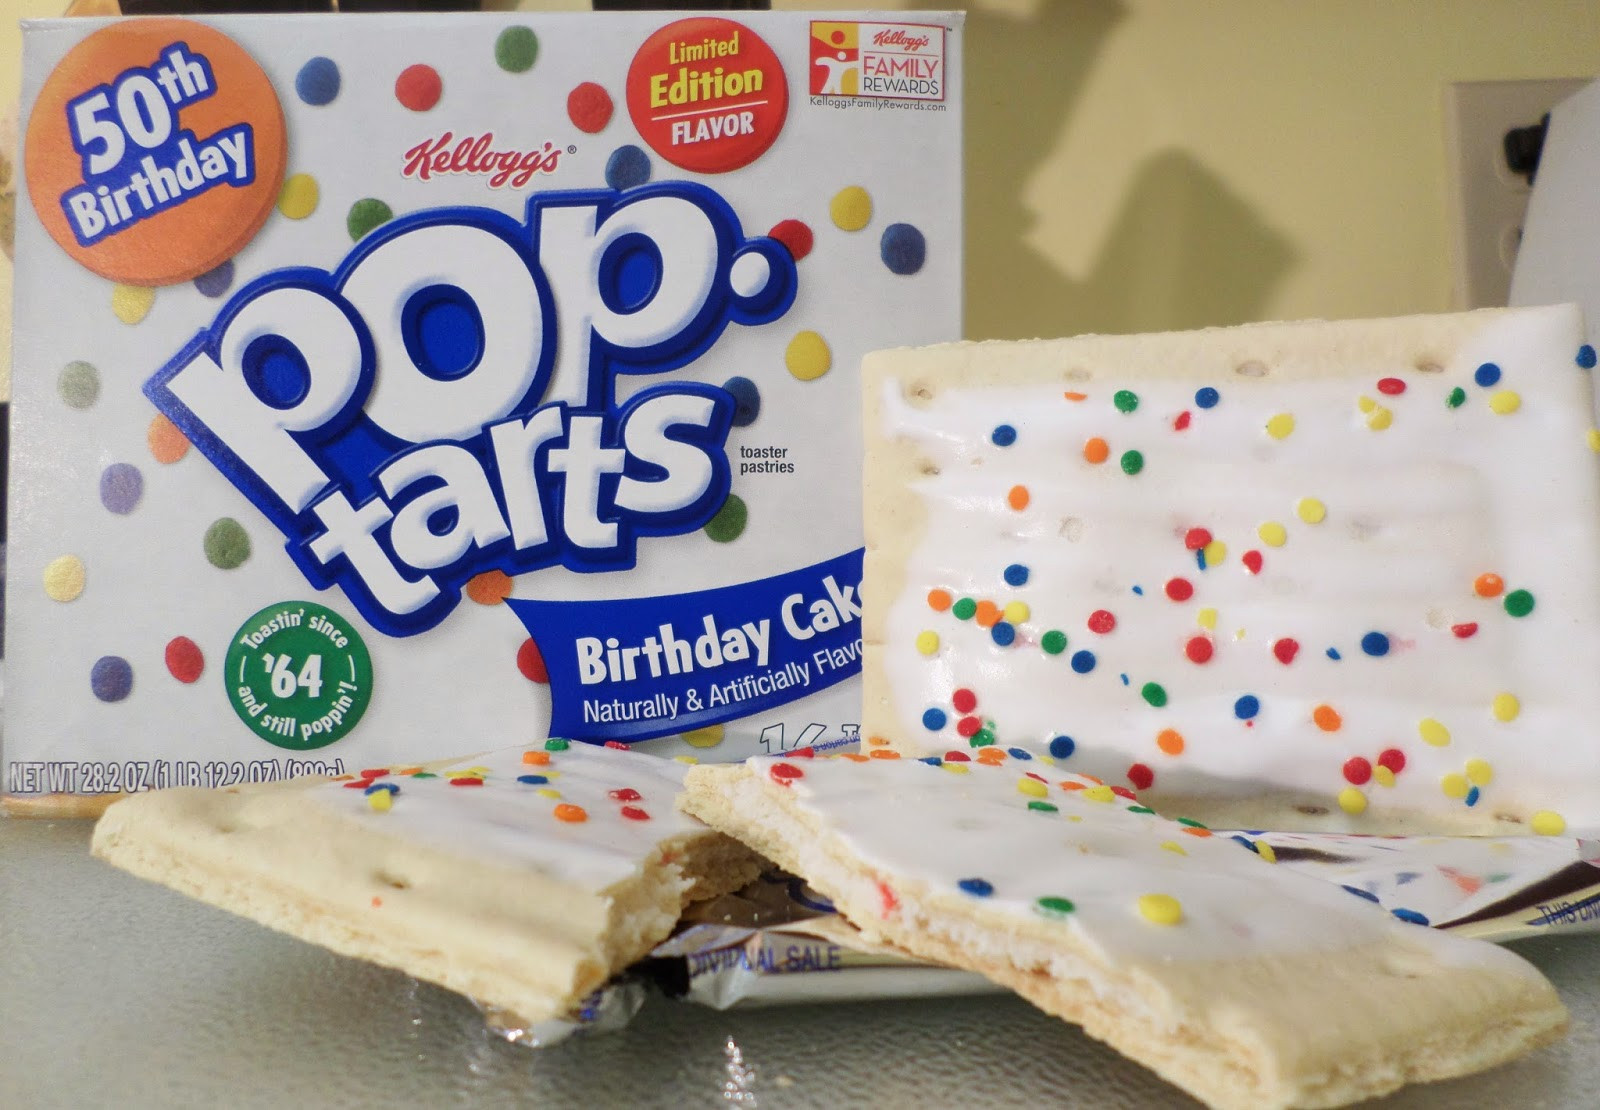 Birthday Cake Pop Tarts  Peanut Butter and Awesome Review Limited Edition